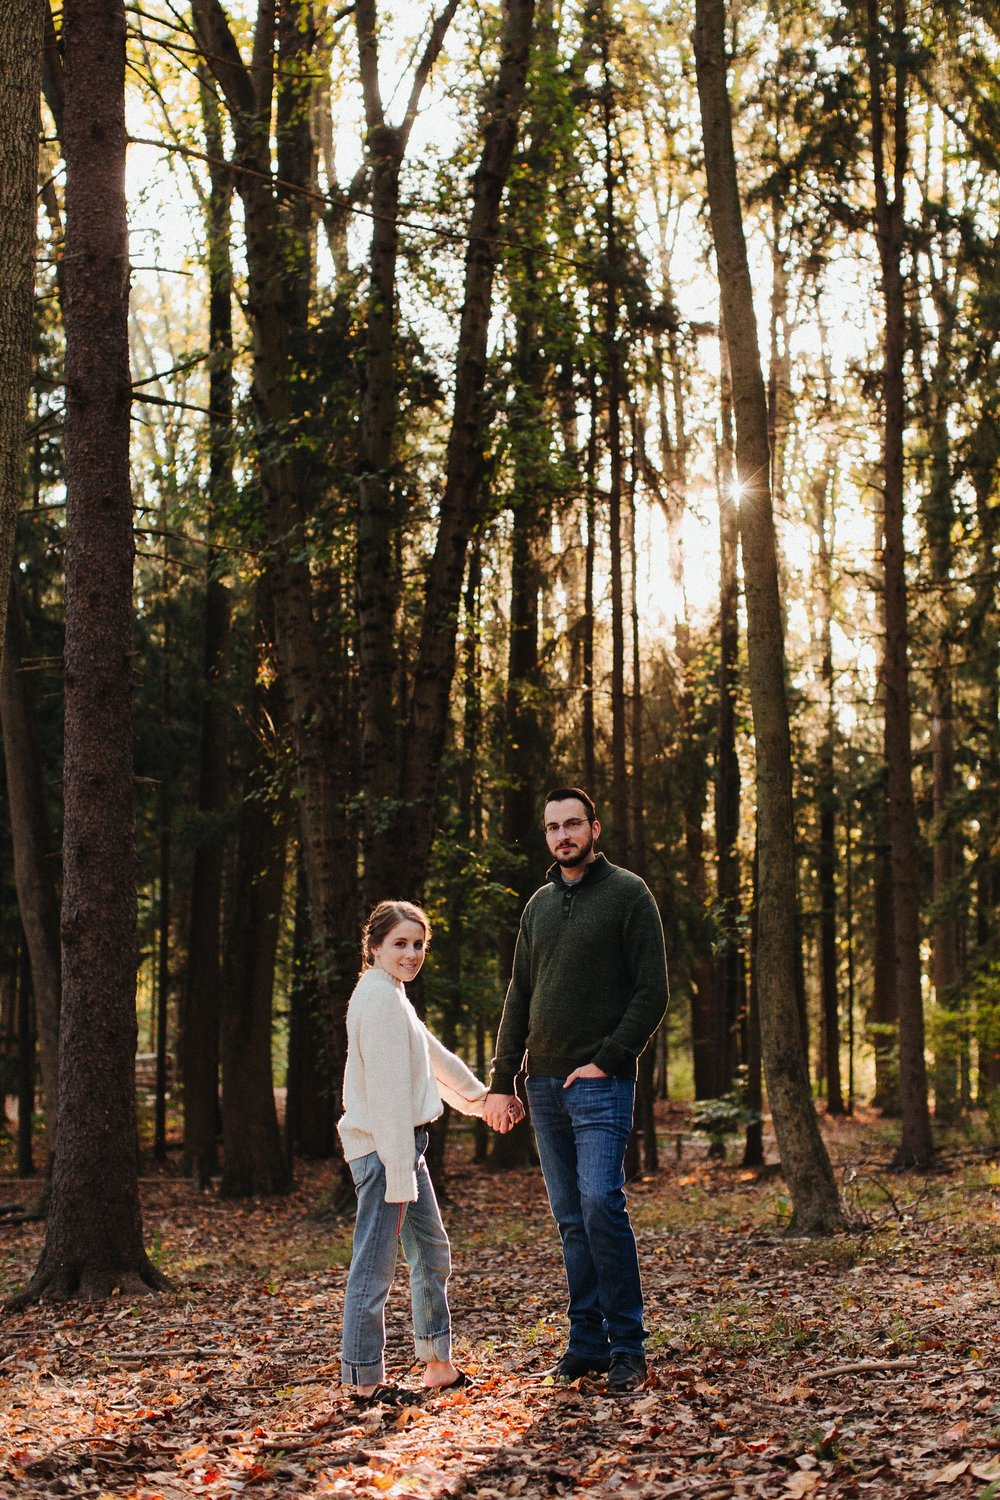 0013_17_10_22_steph_tim0101_woodsy,_fall,_nature_field,_engagement,.jpg